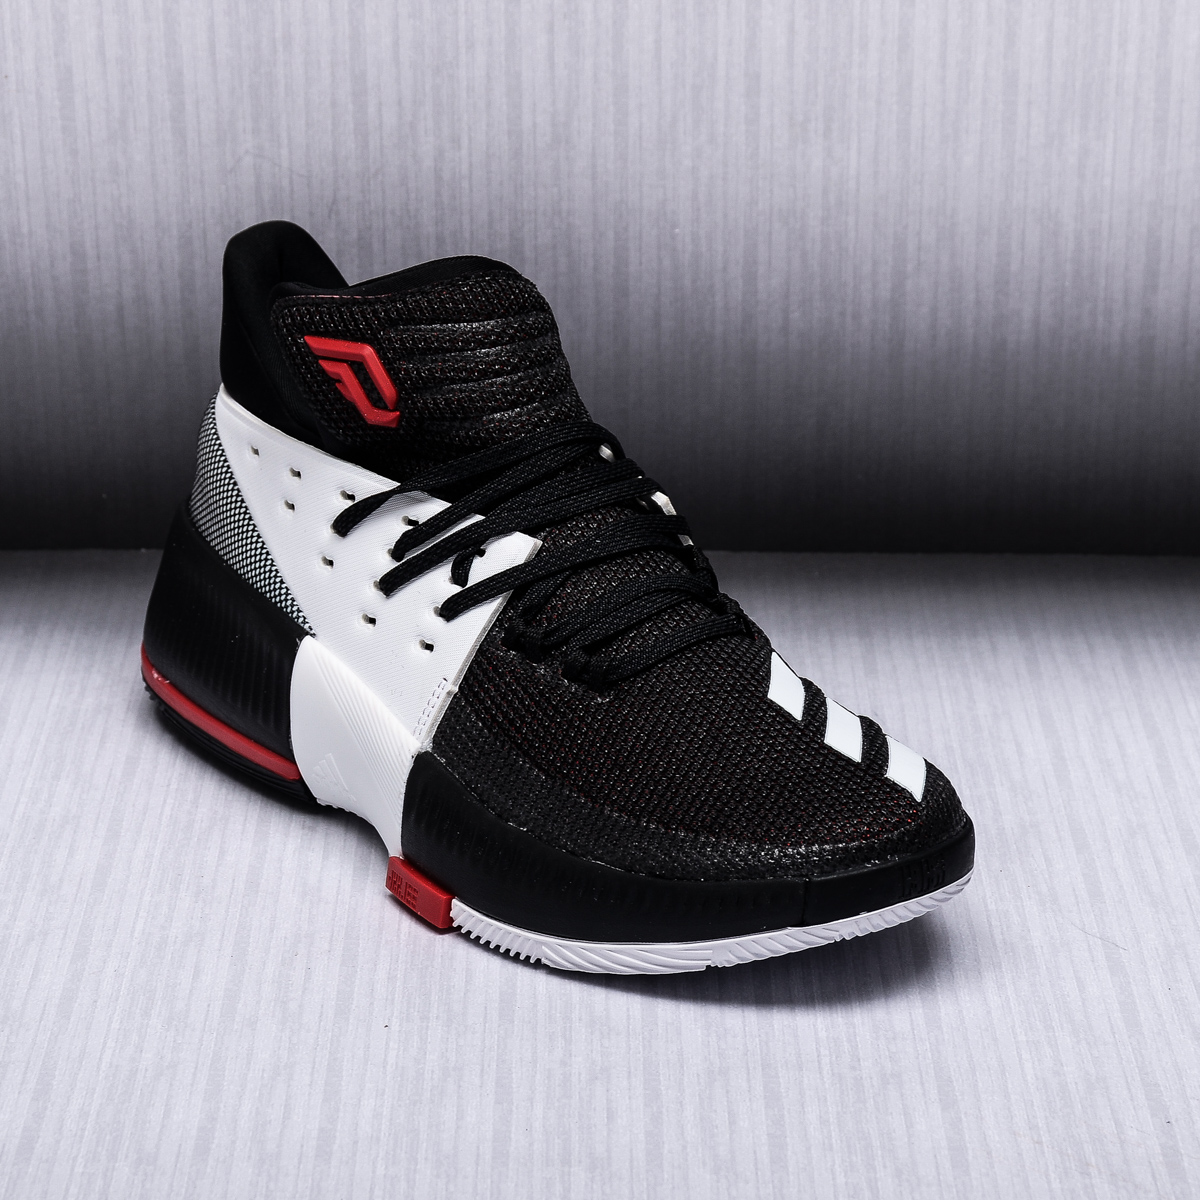 Damian Lillard Adidas Shoes